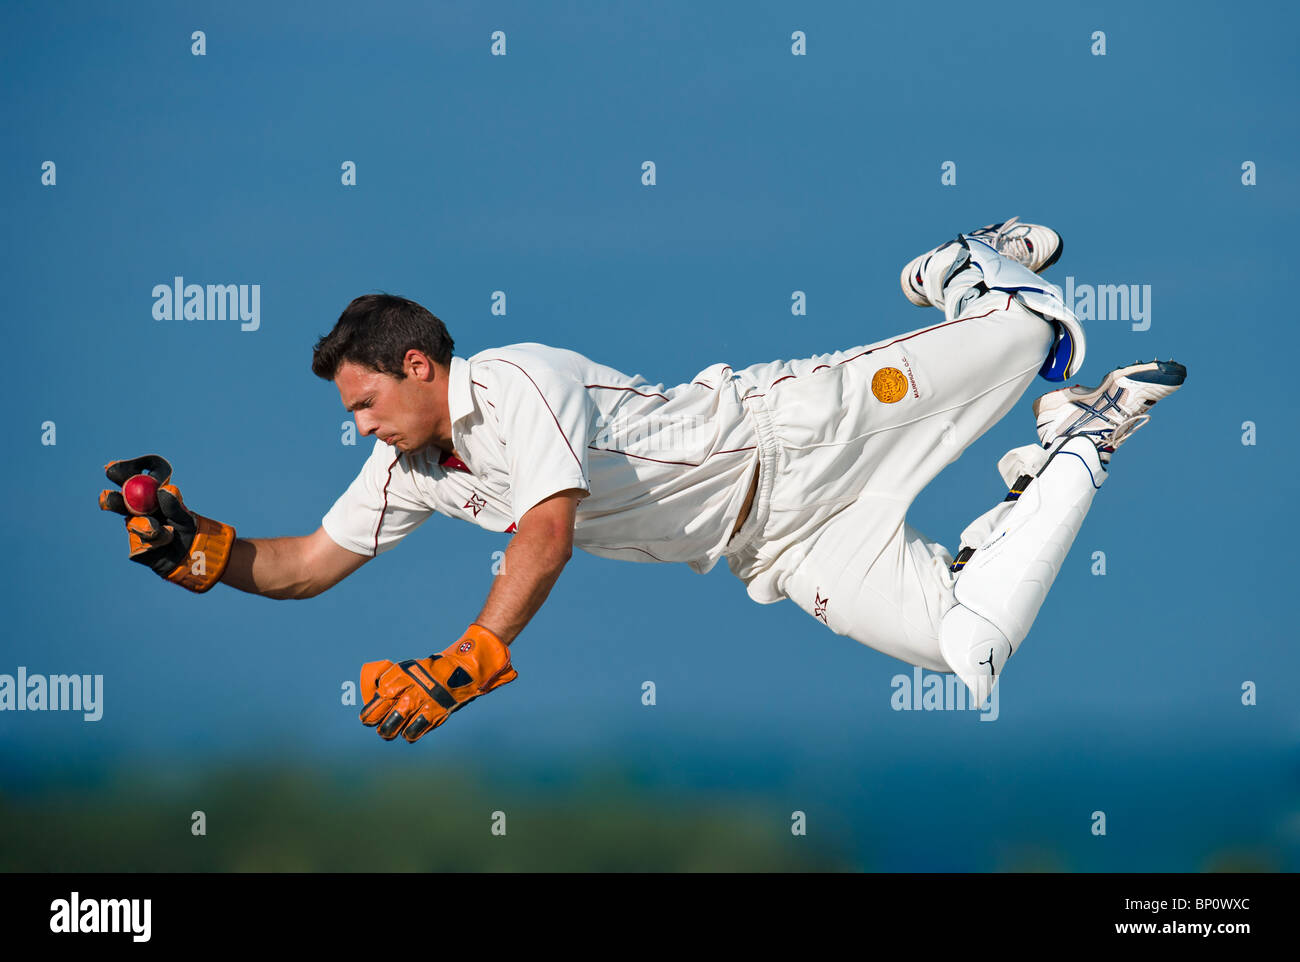 Wicket keeper in action diving to catch cricket ball. - Stock Image